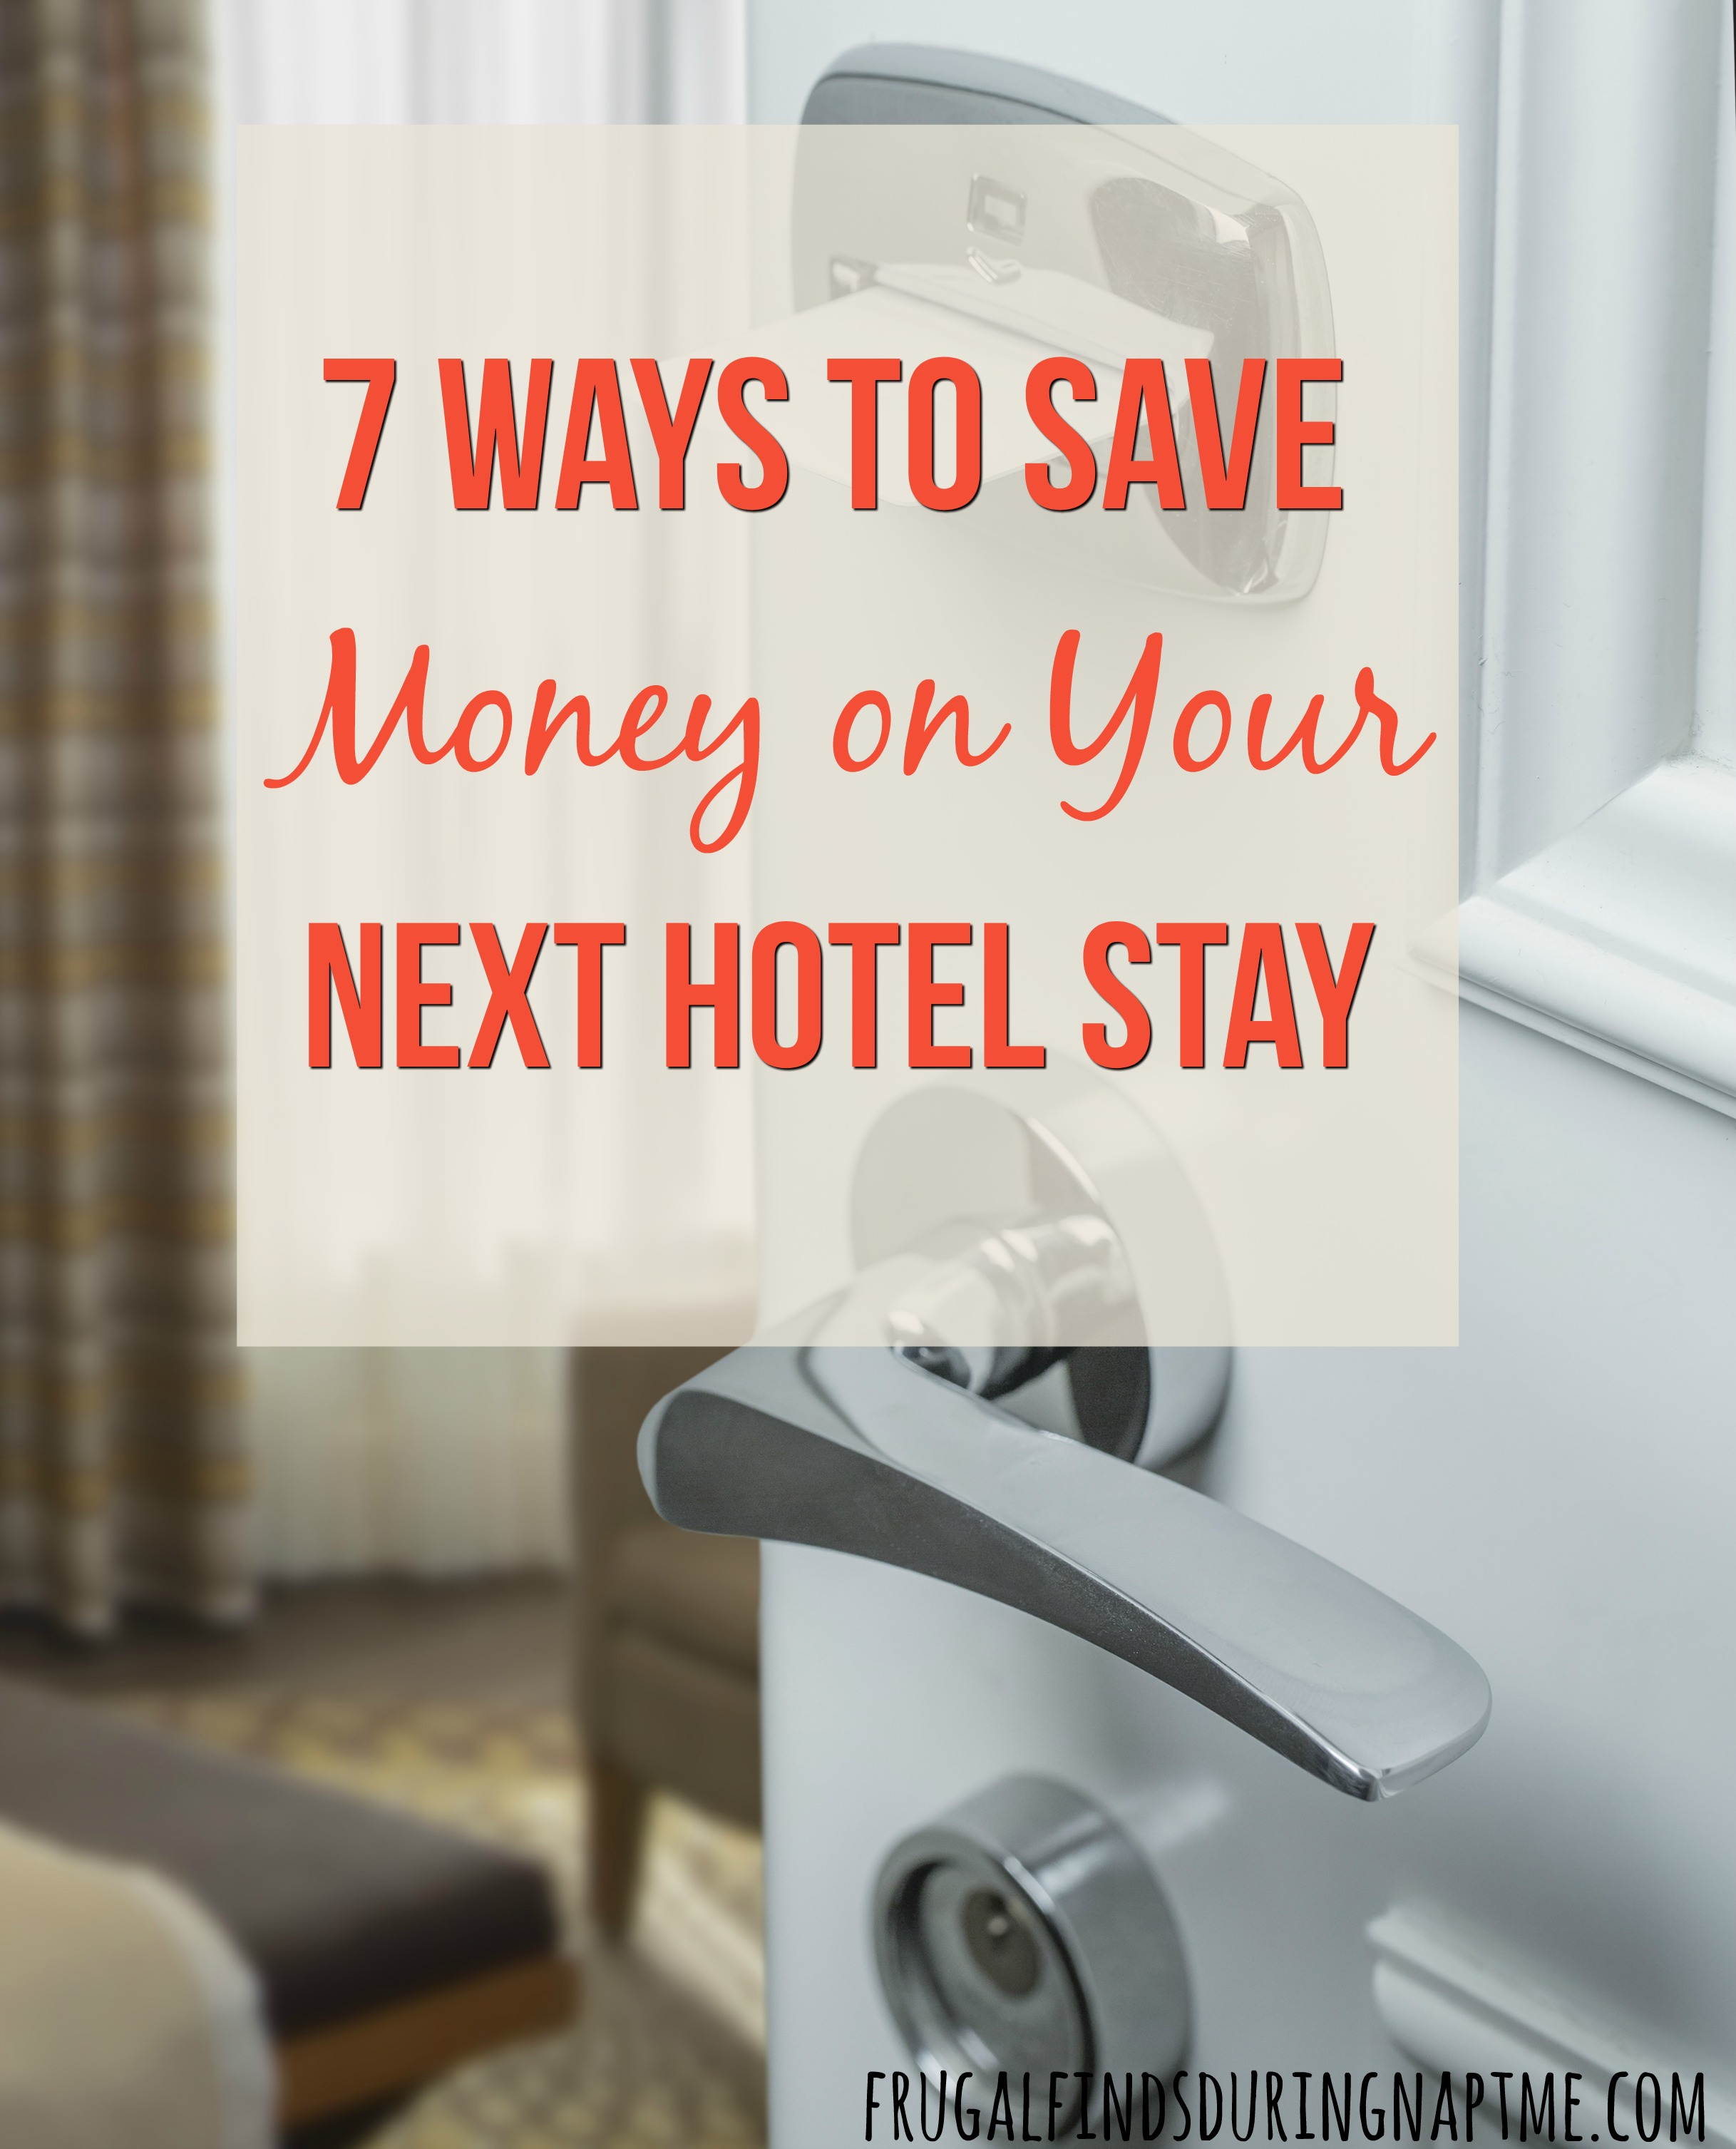 7 Ways To Save Money On Your Next Hotel Stay